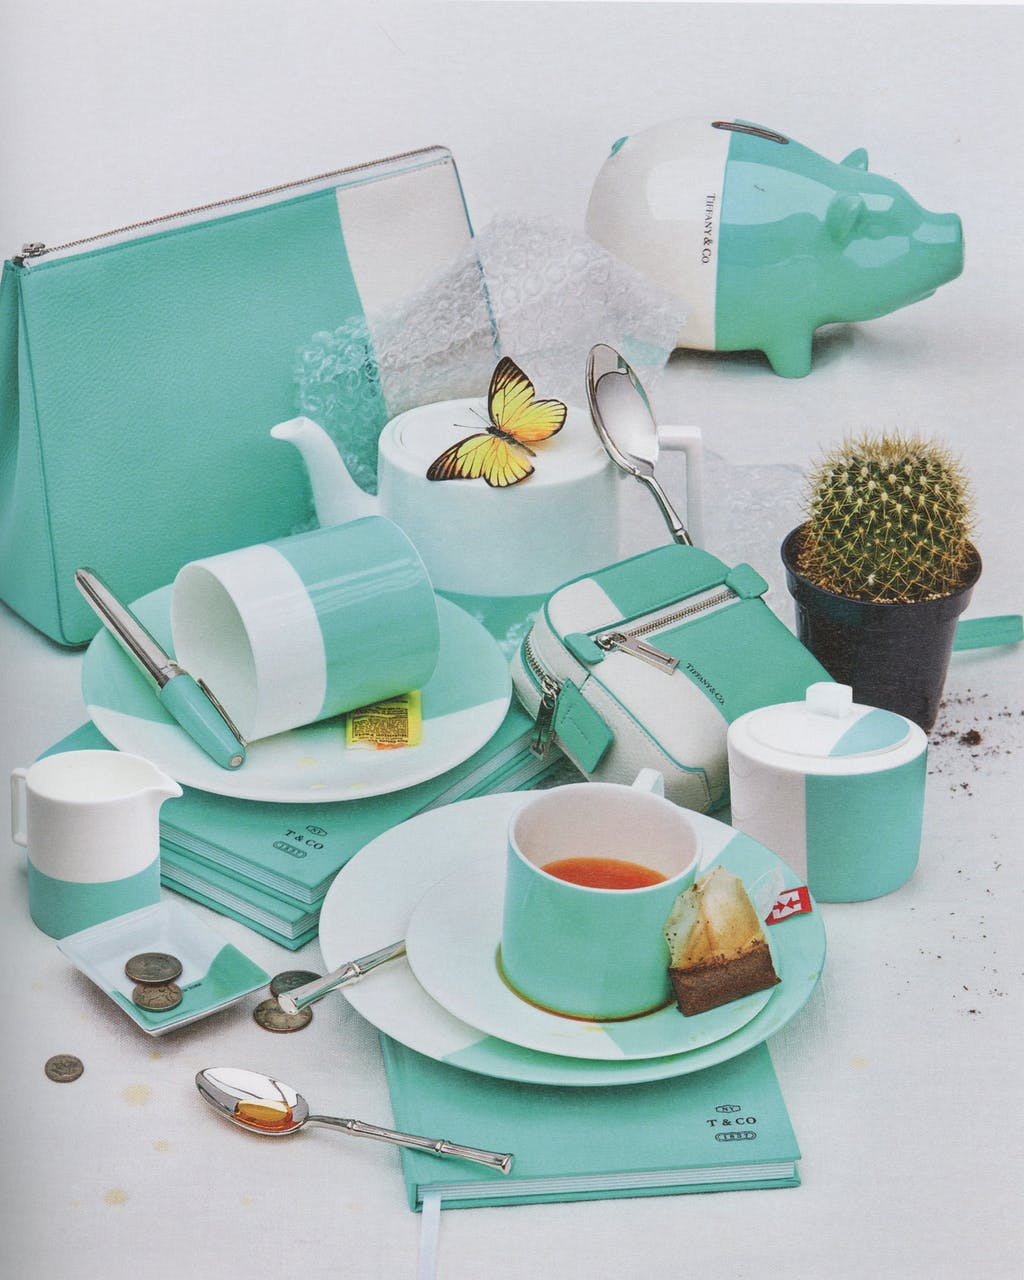 Work for Tiffany & Co.